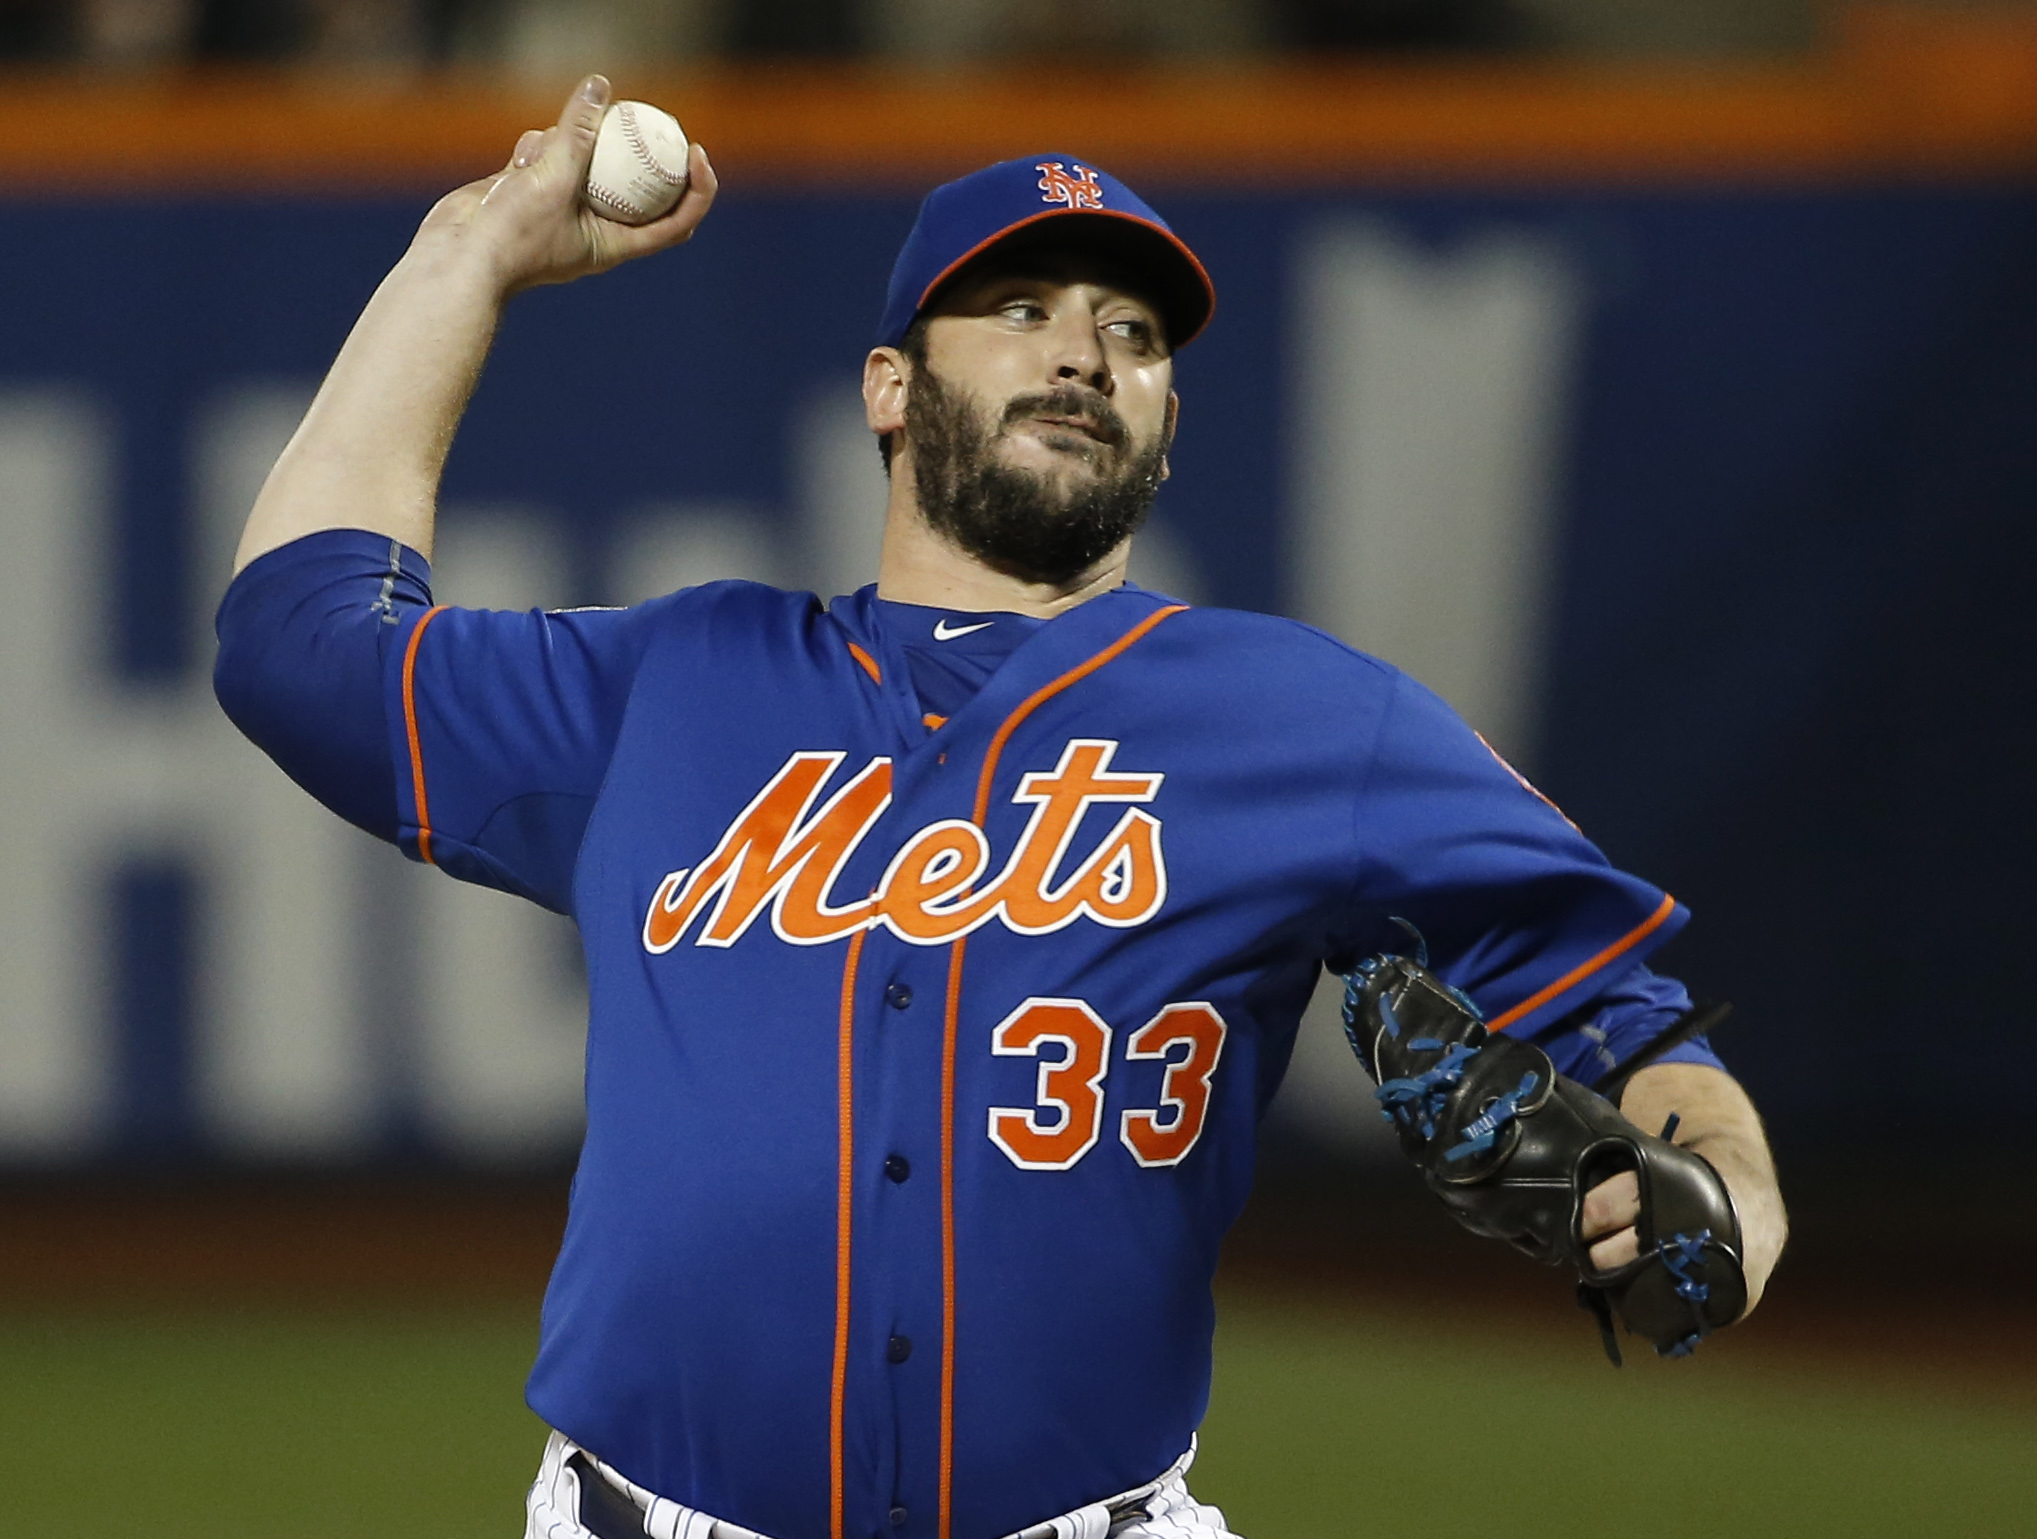 New York Mets pitcher Matt Harvey pitches during the first inning of Game 5 of the Major League Baseball World Series against the Kansas City Royals Sunday, Nov. 1, 2015, in New York. (AP Photo/Matt Slocum)